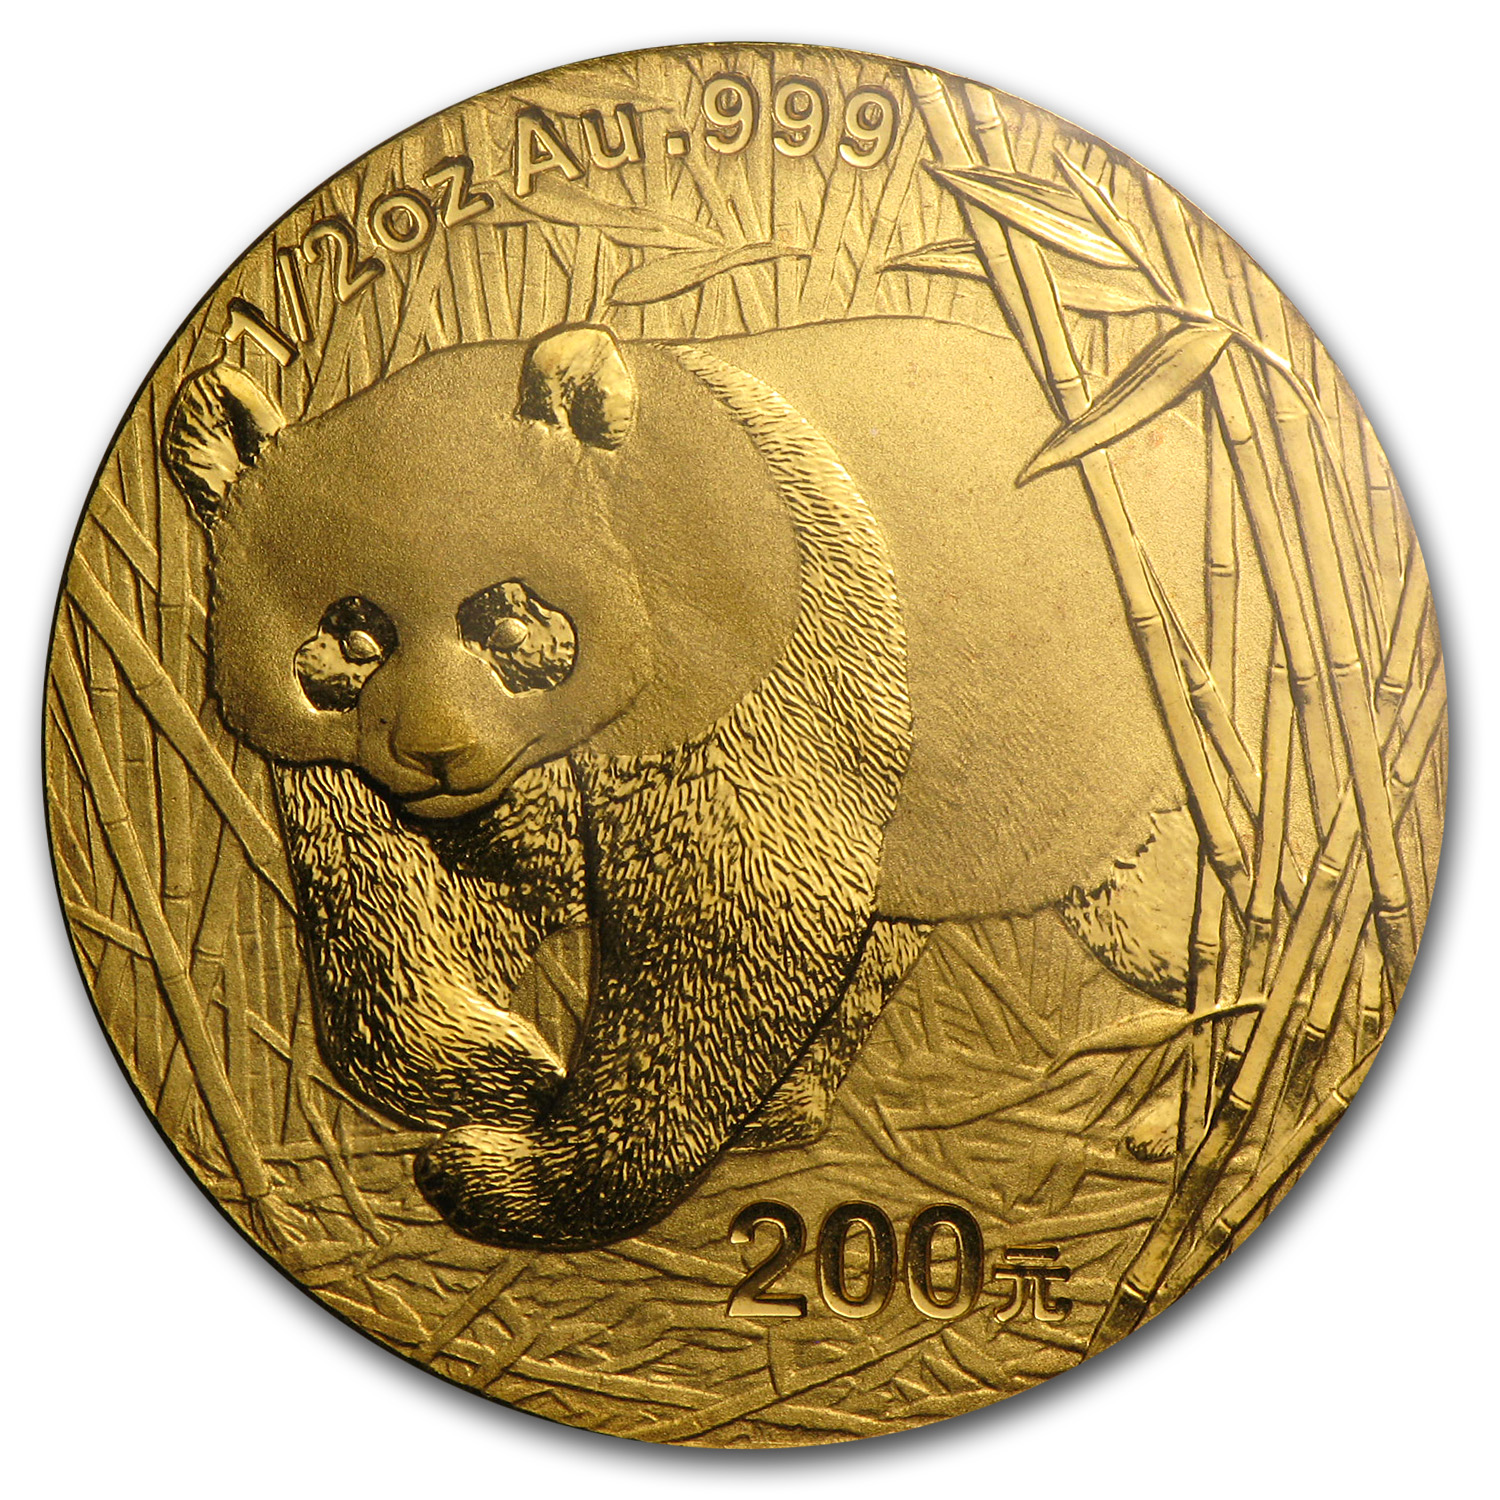 2001 China 1/2 oz Gold Panda BU (Sealed)